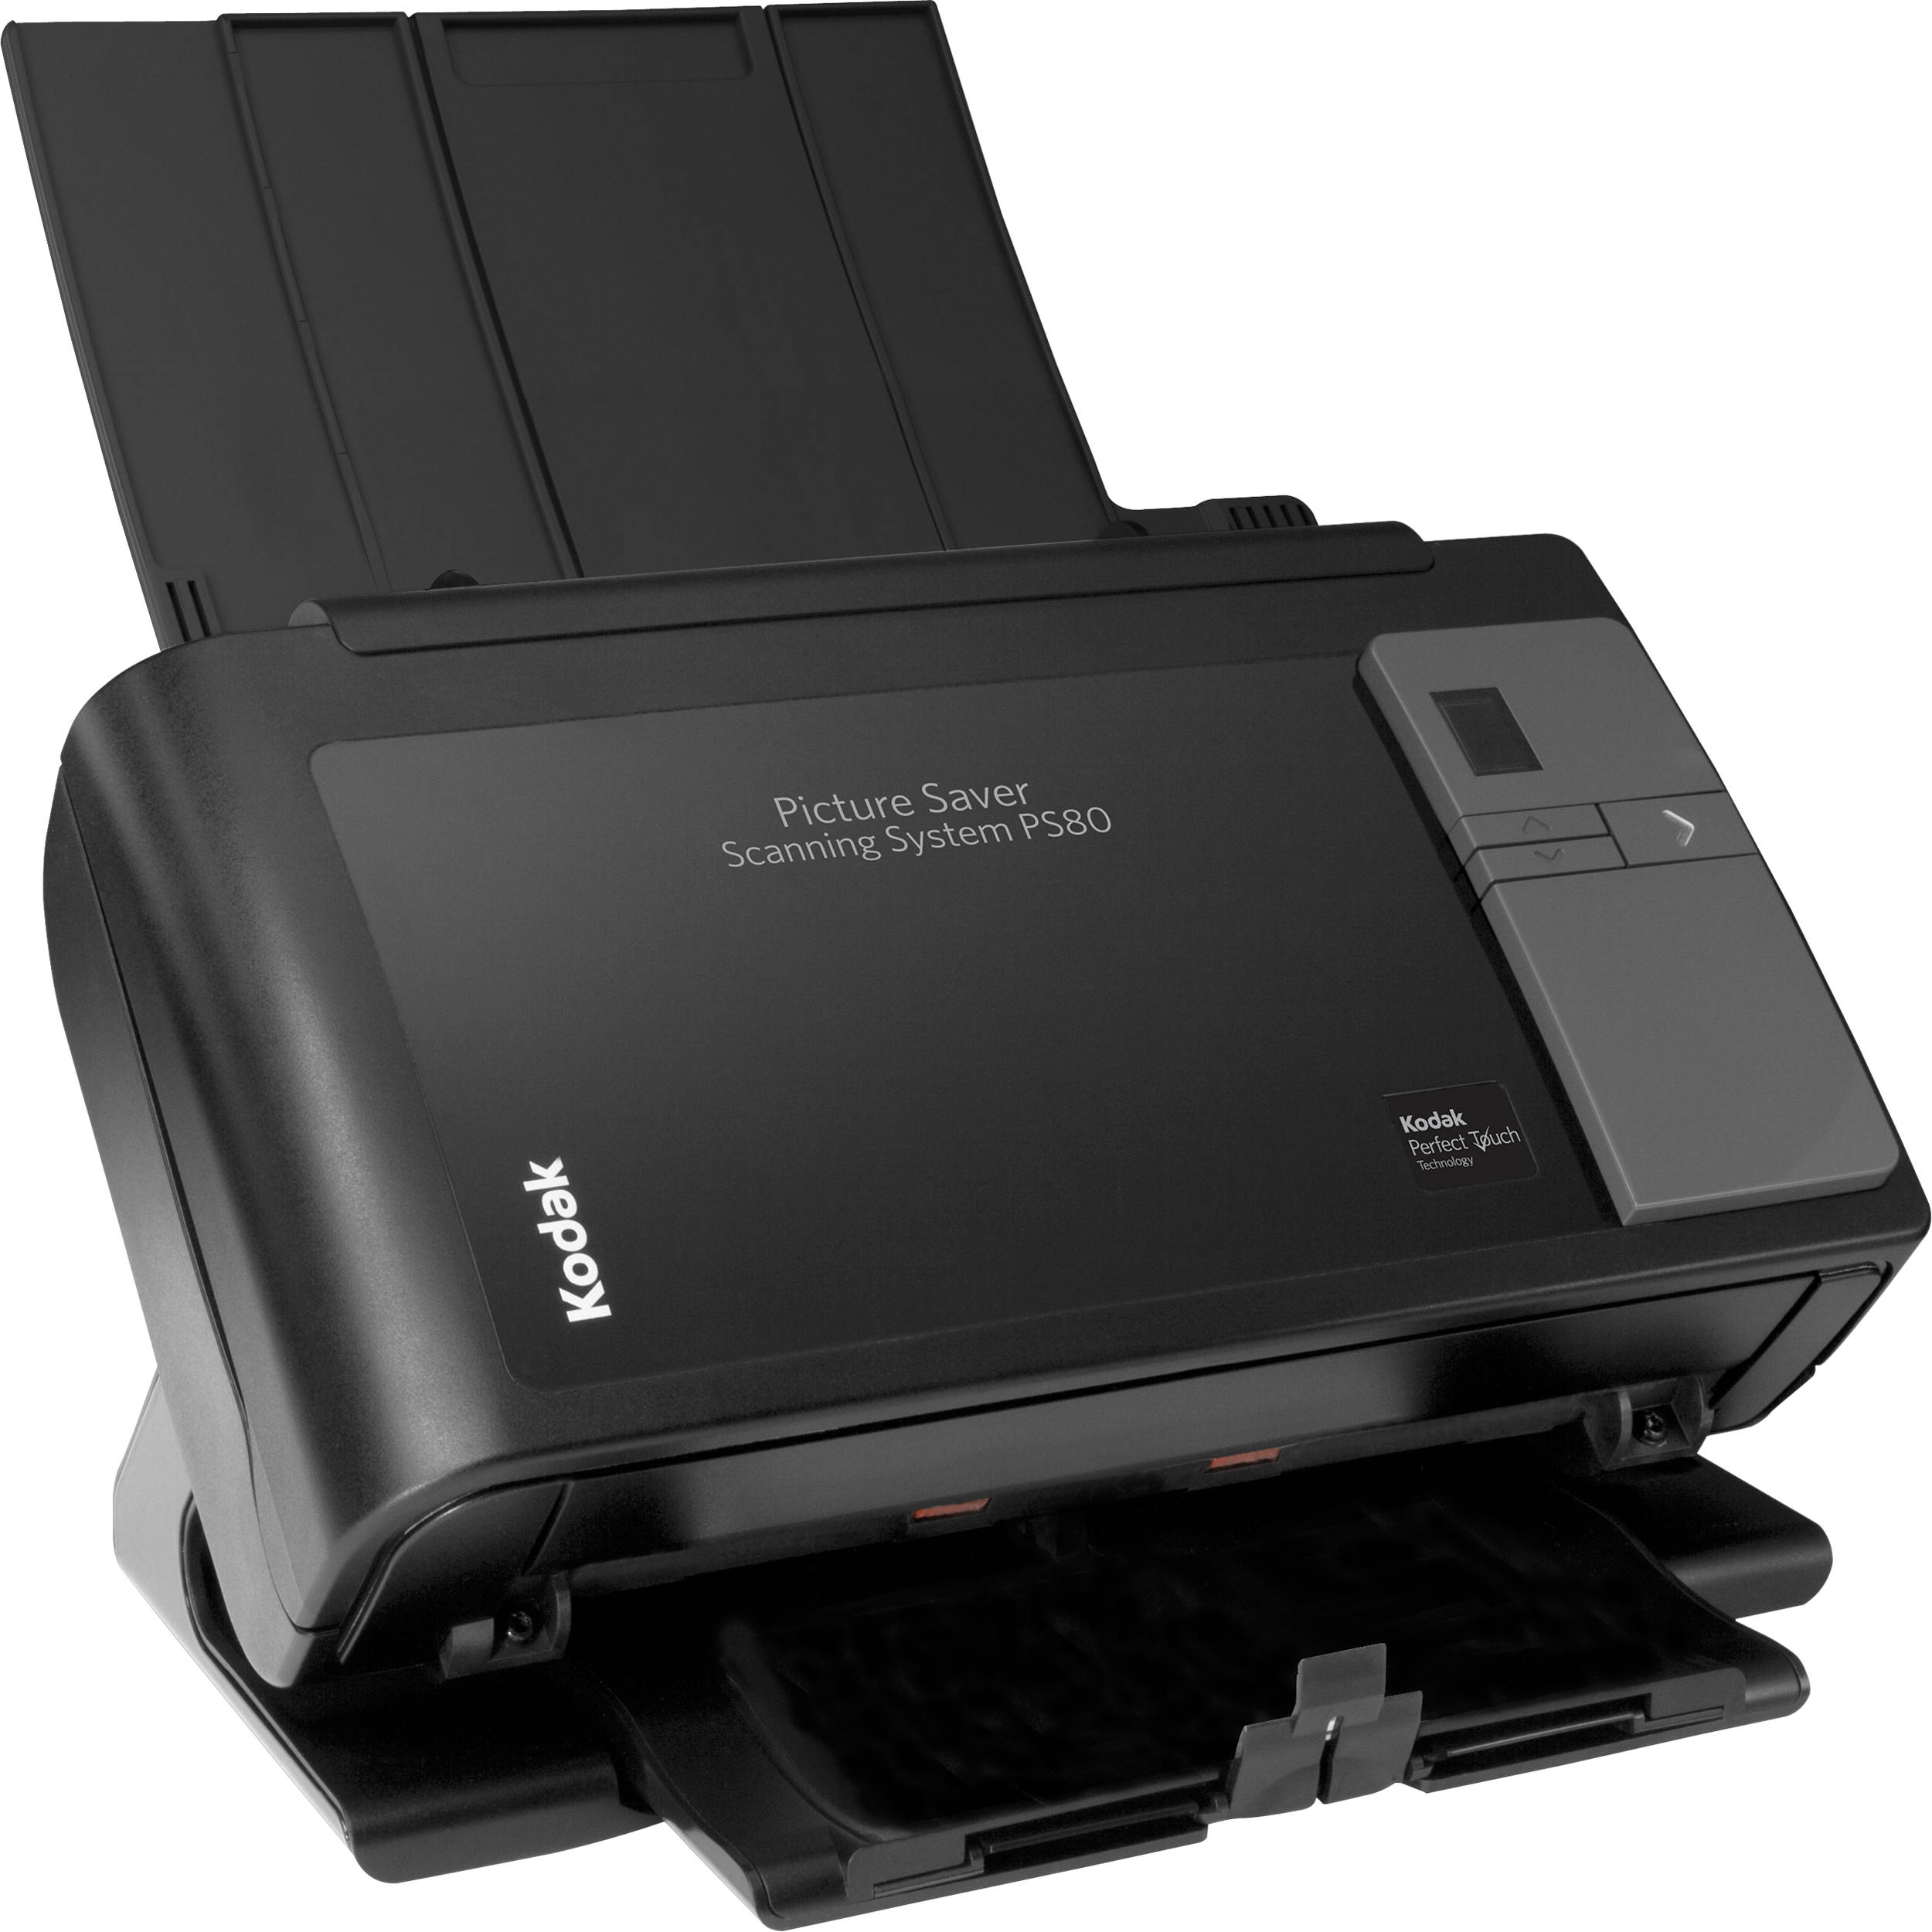 Kodak Ps80 Picture Saver Scanning System 1099183 Bh Photo Video